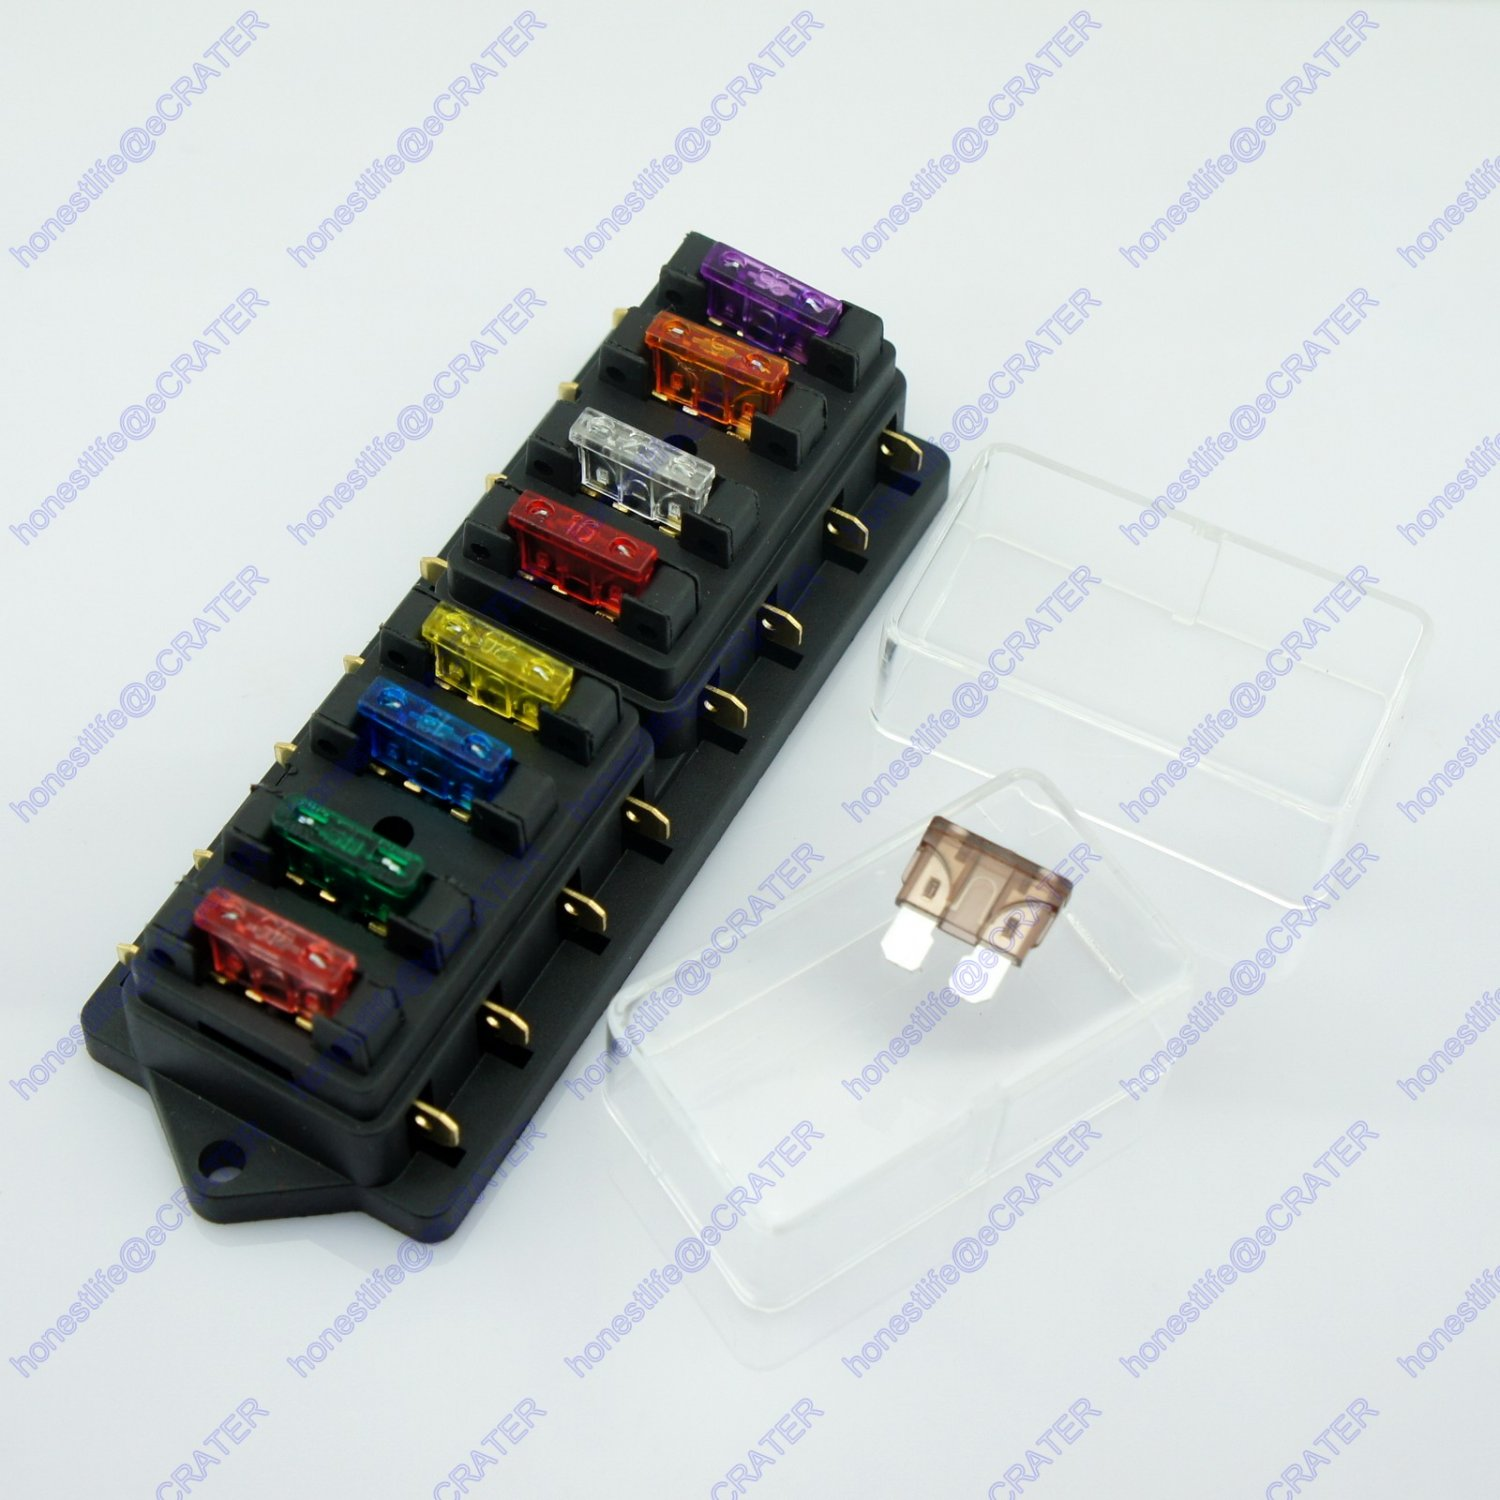 8 Way ATU Standard Blade Fuse Box Holder 12V 24V Car Truck RV Camper Boat Marine